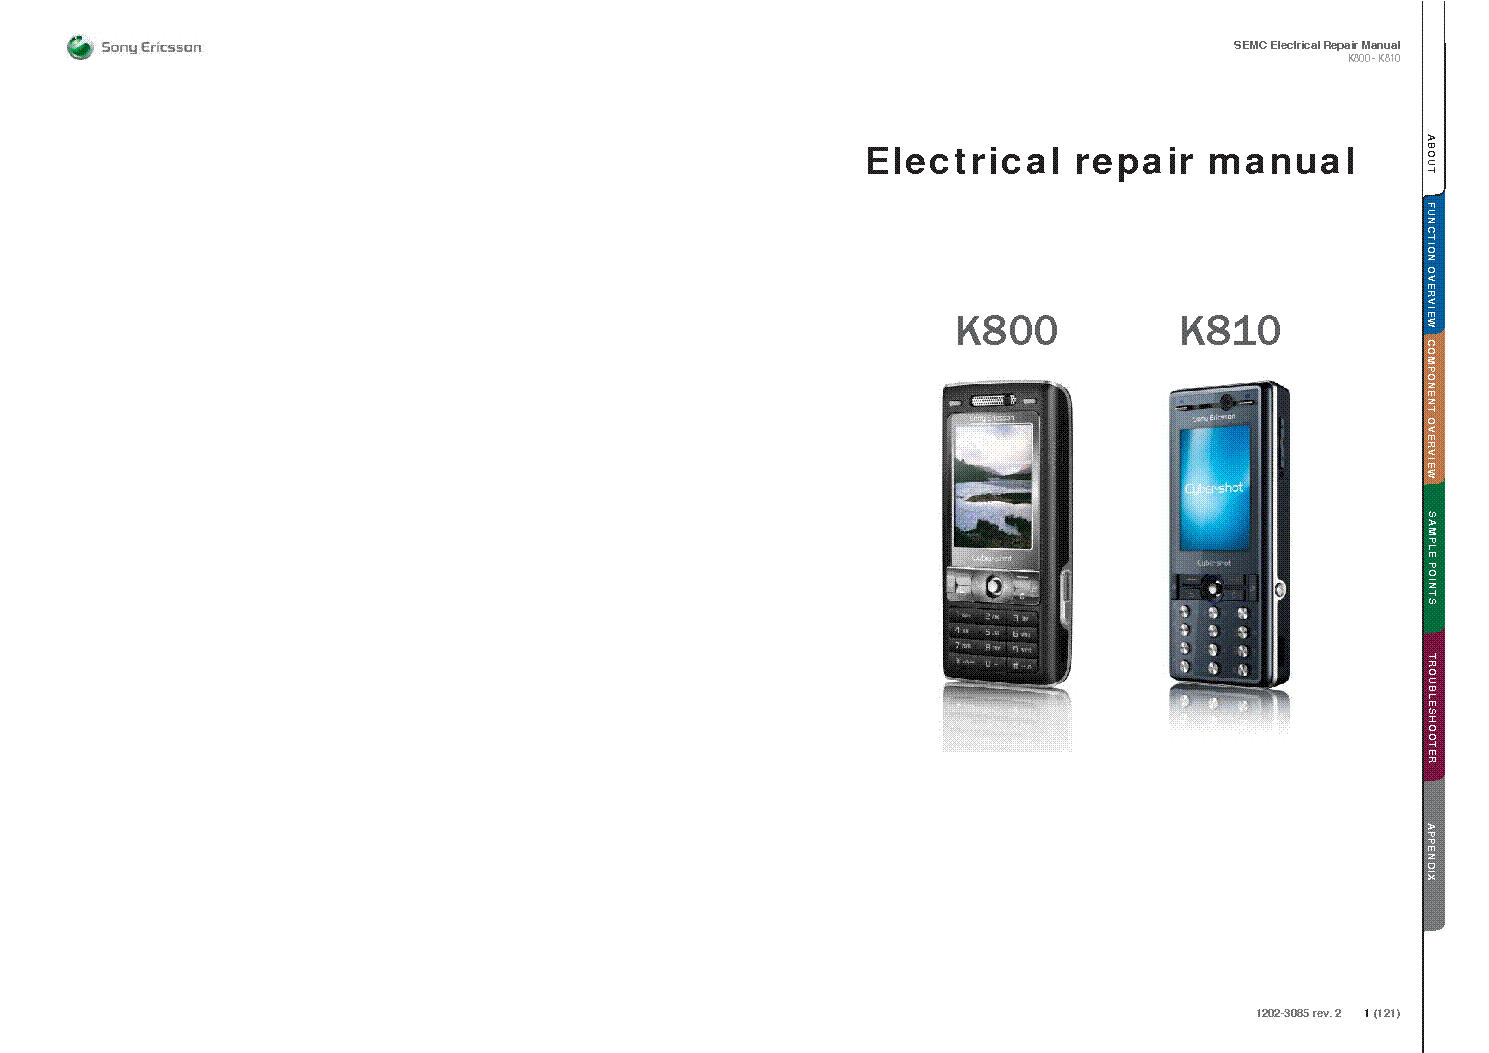 SONY ERICSSON K800 K810 ELECTRICAL REPAIR MANUAL Service Manual 1st Page